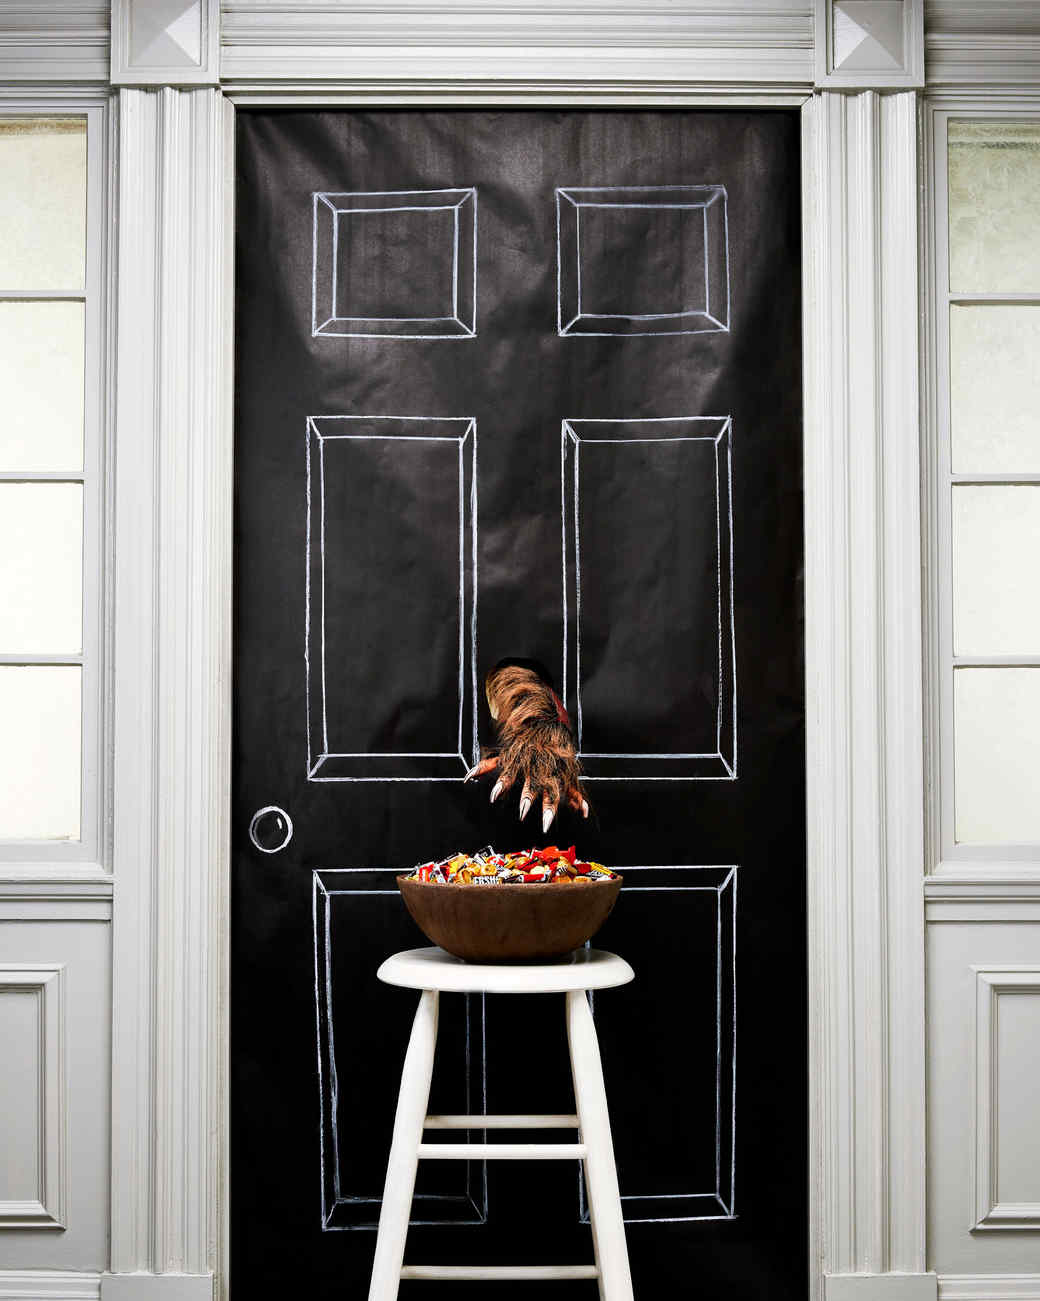 10 clever ways to display your halloween candy for trick-or-treaters